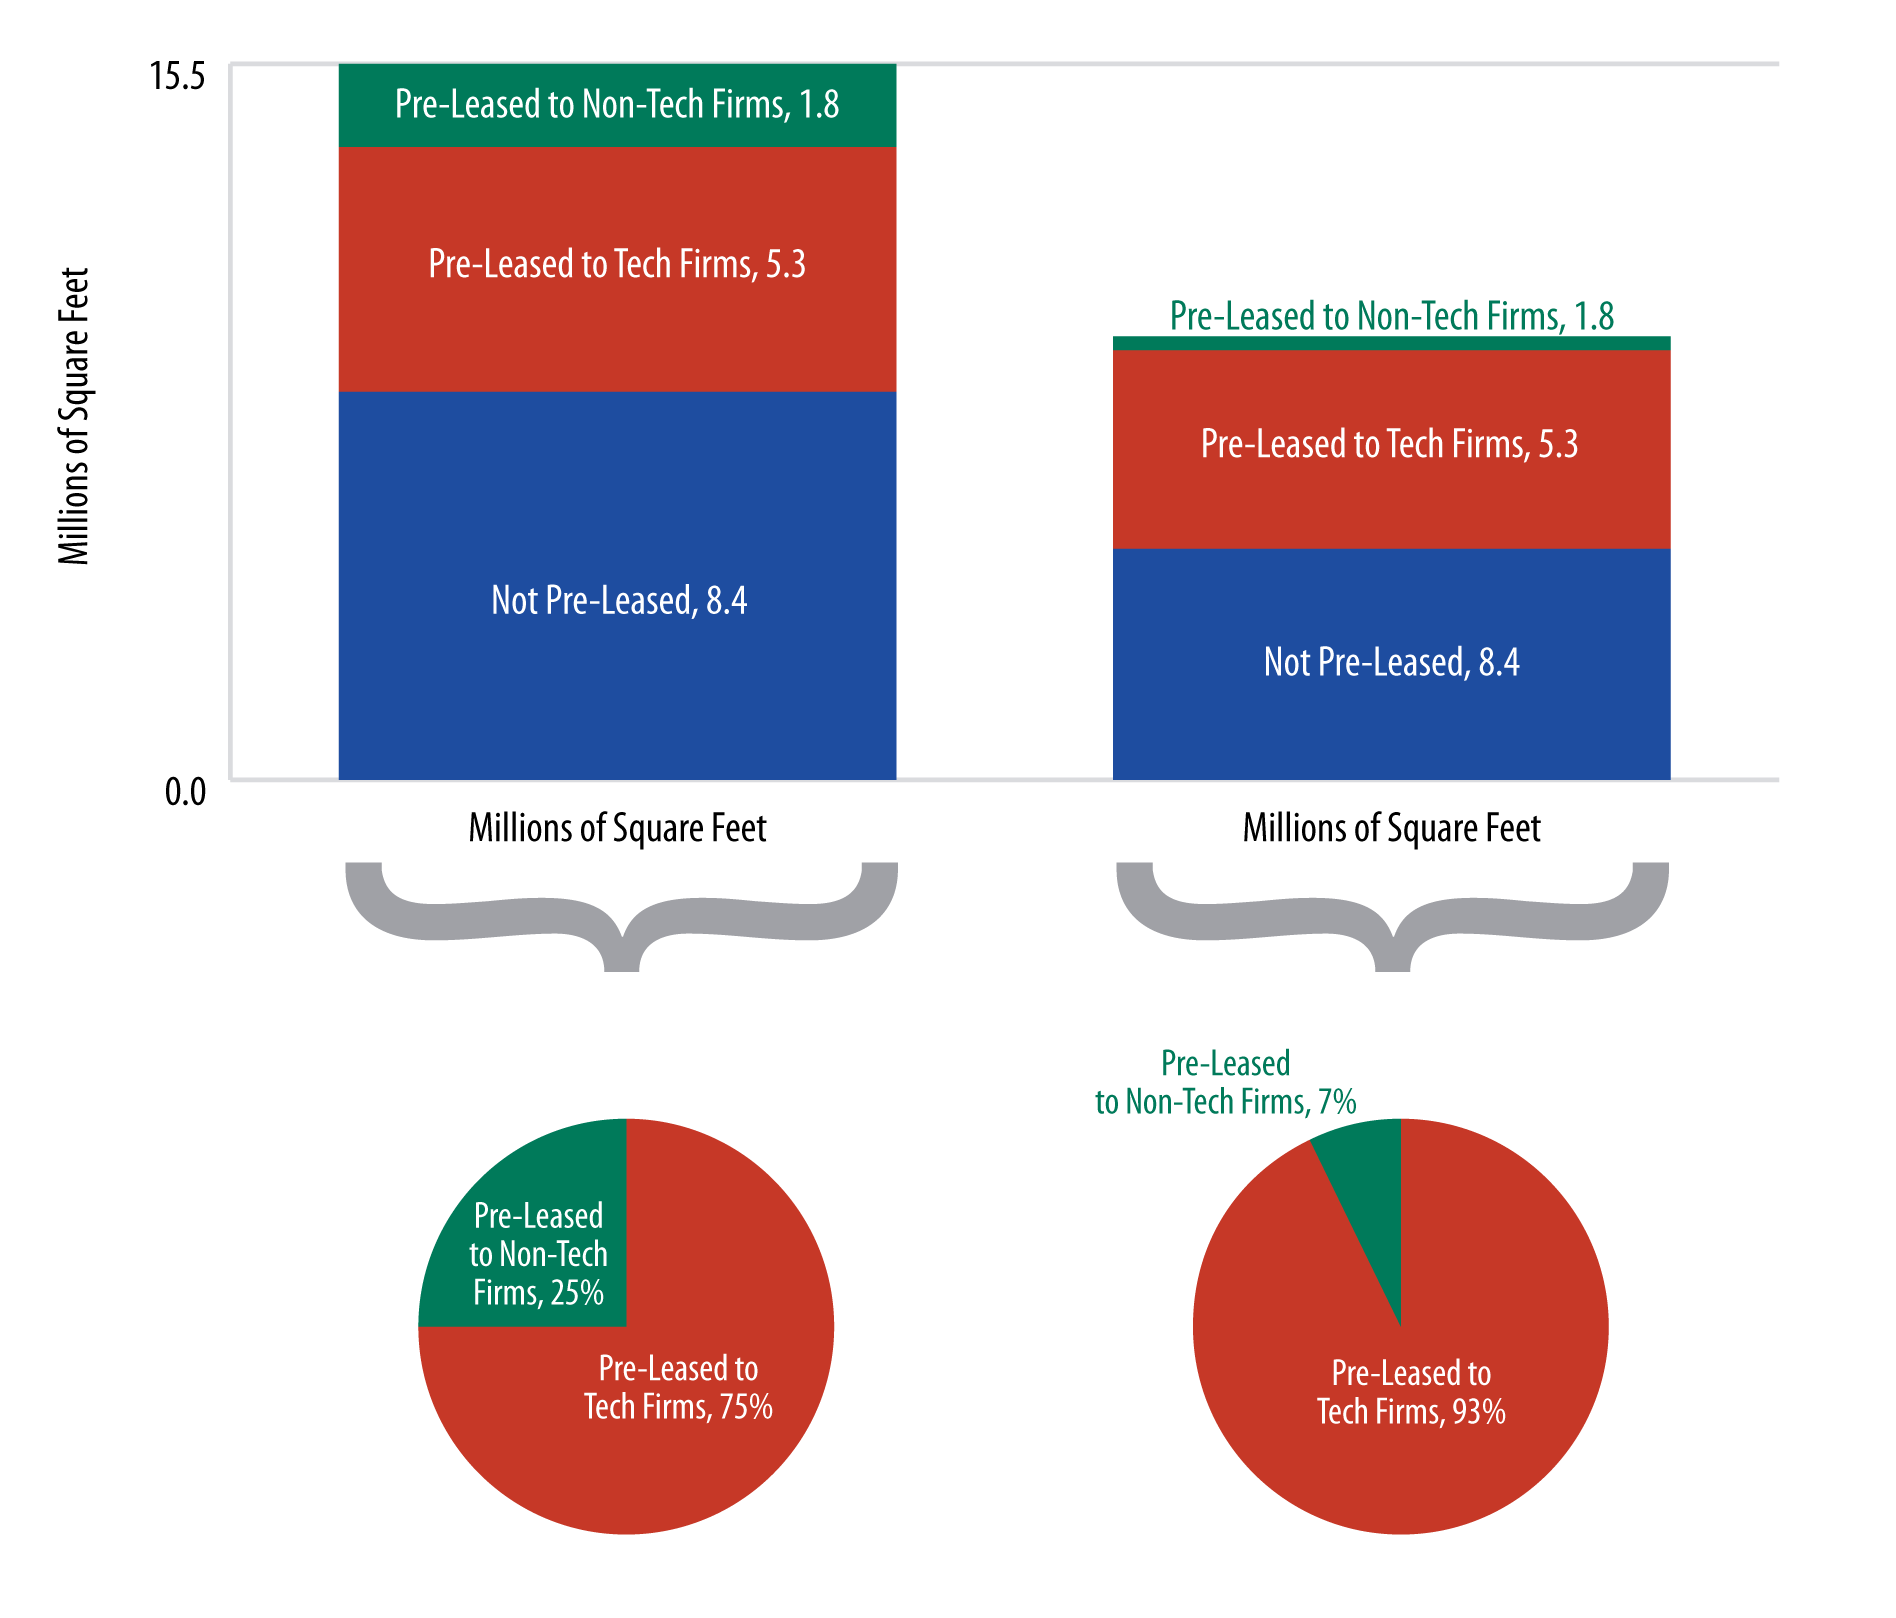 Two red, green, and blue bar charts with corresponding pie charts